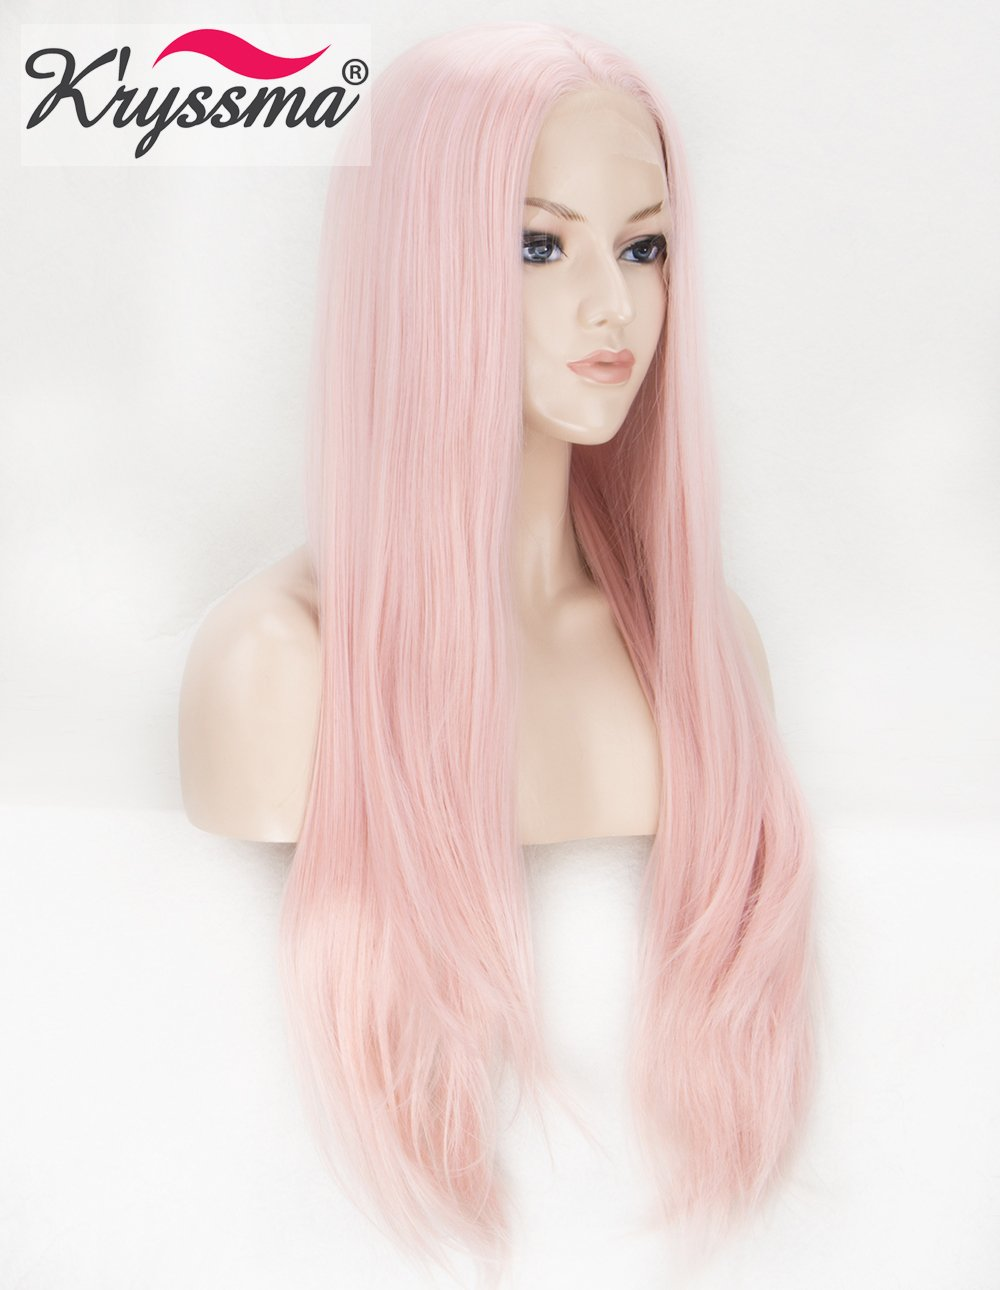 K'ryssma KÀryssma Pink Lace Front Wig Half Hand Tied Long Straight Synthetic Wig for Women Heat Resistant 22 inches